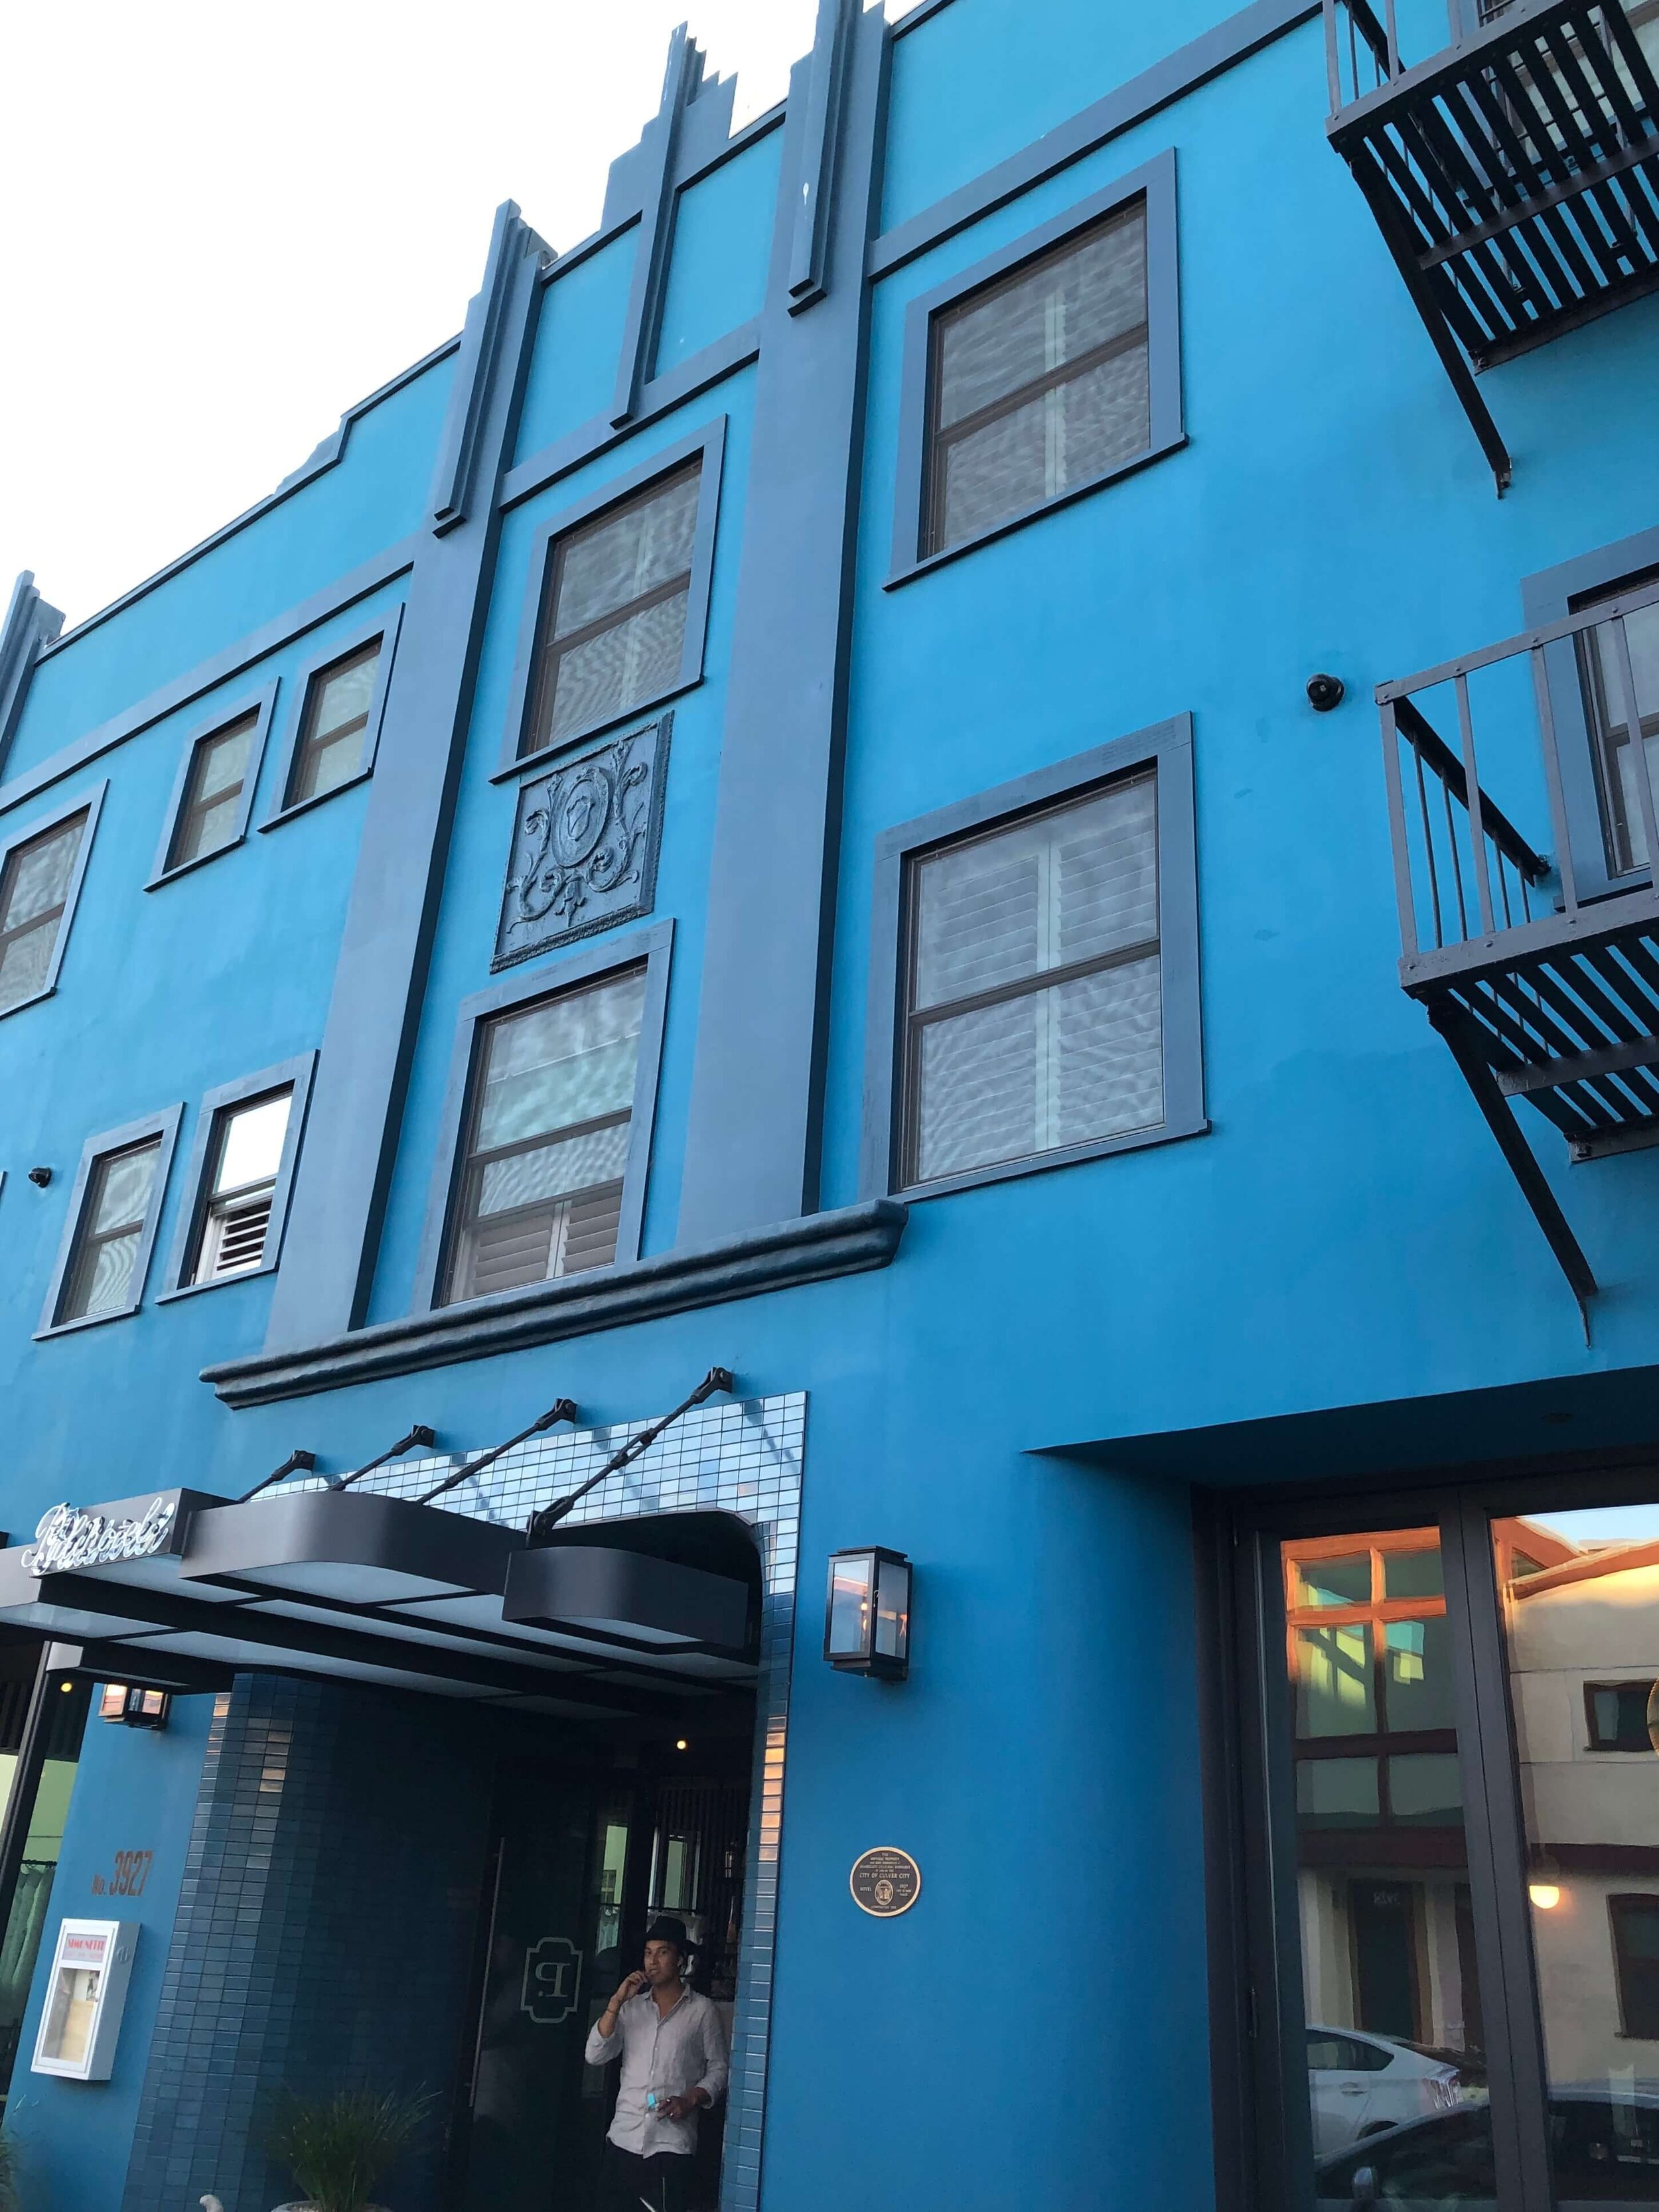 Vivid turquoise color on the exterior of the Palihotel, Culver City, a restored Art Deco building with a bohemian modern vibe. #artdeco #hotel #modernboho